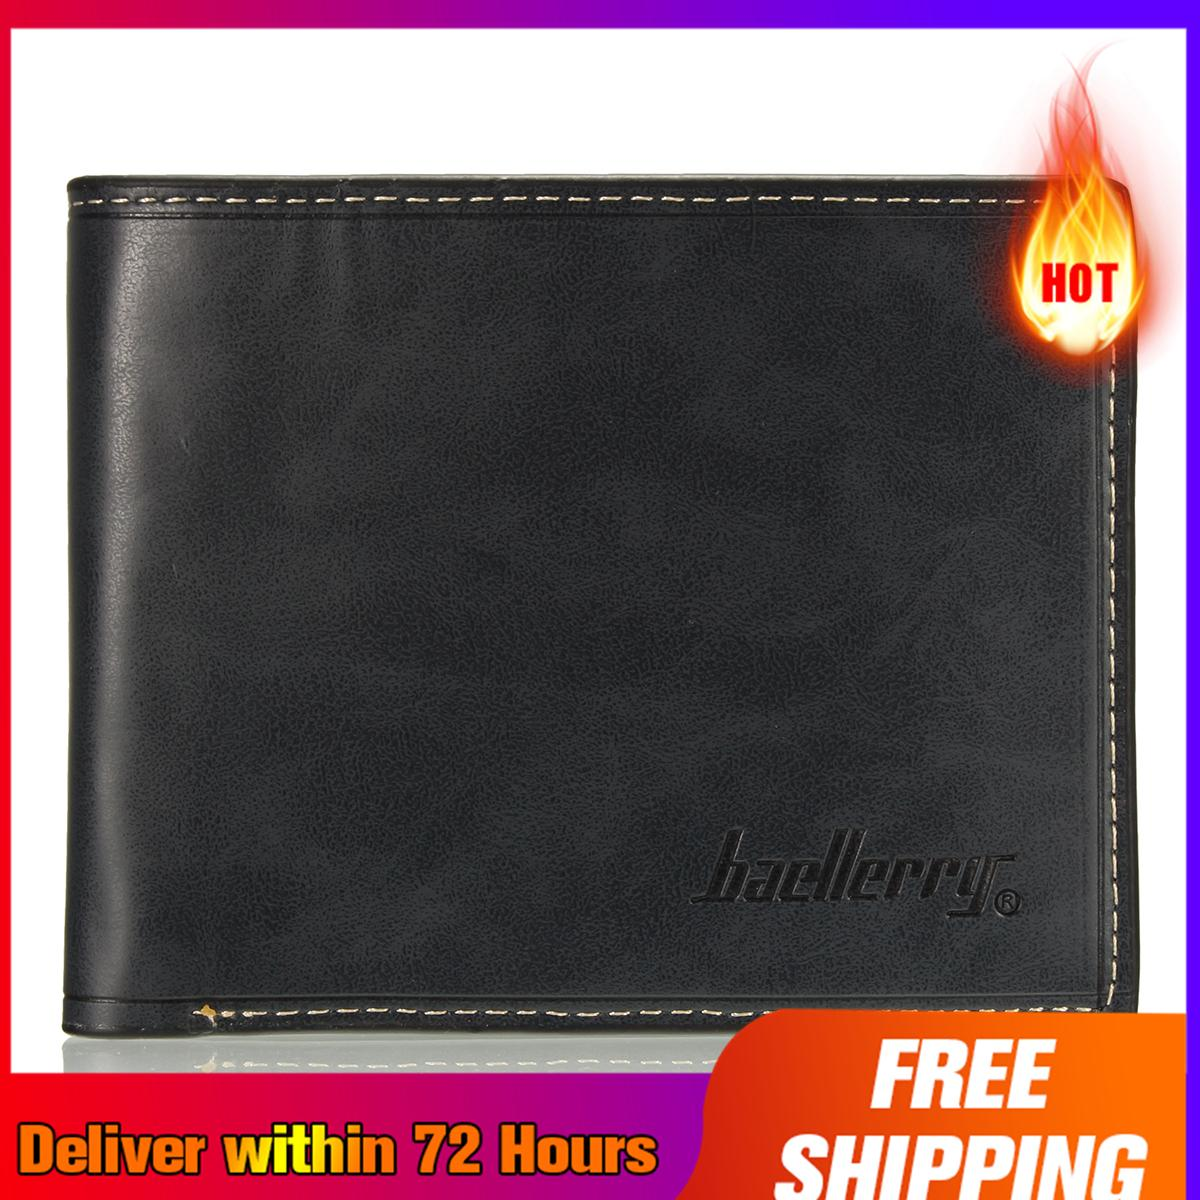 【Free Shipping + Super Deal + Limited Offer】Simple Fashion Mens Leather Wallet Credit